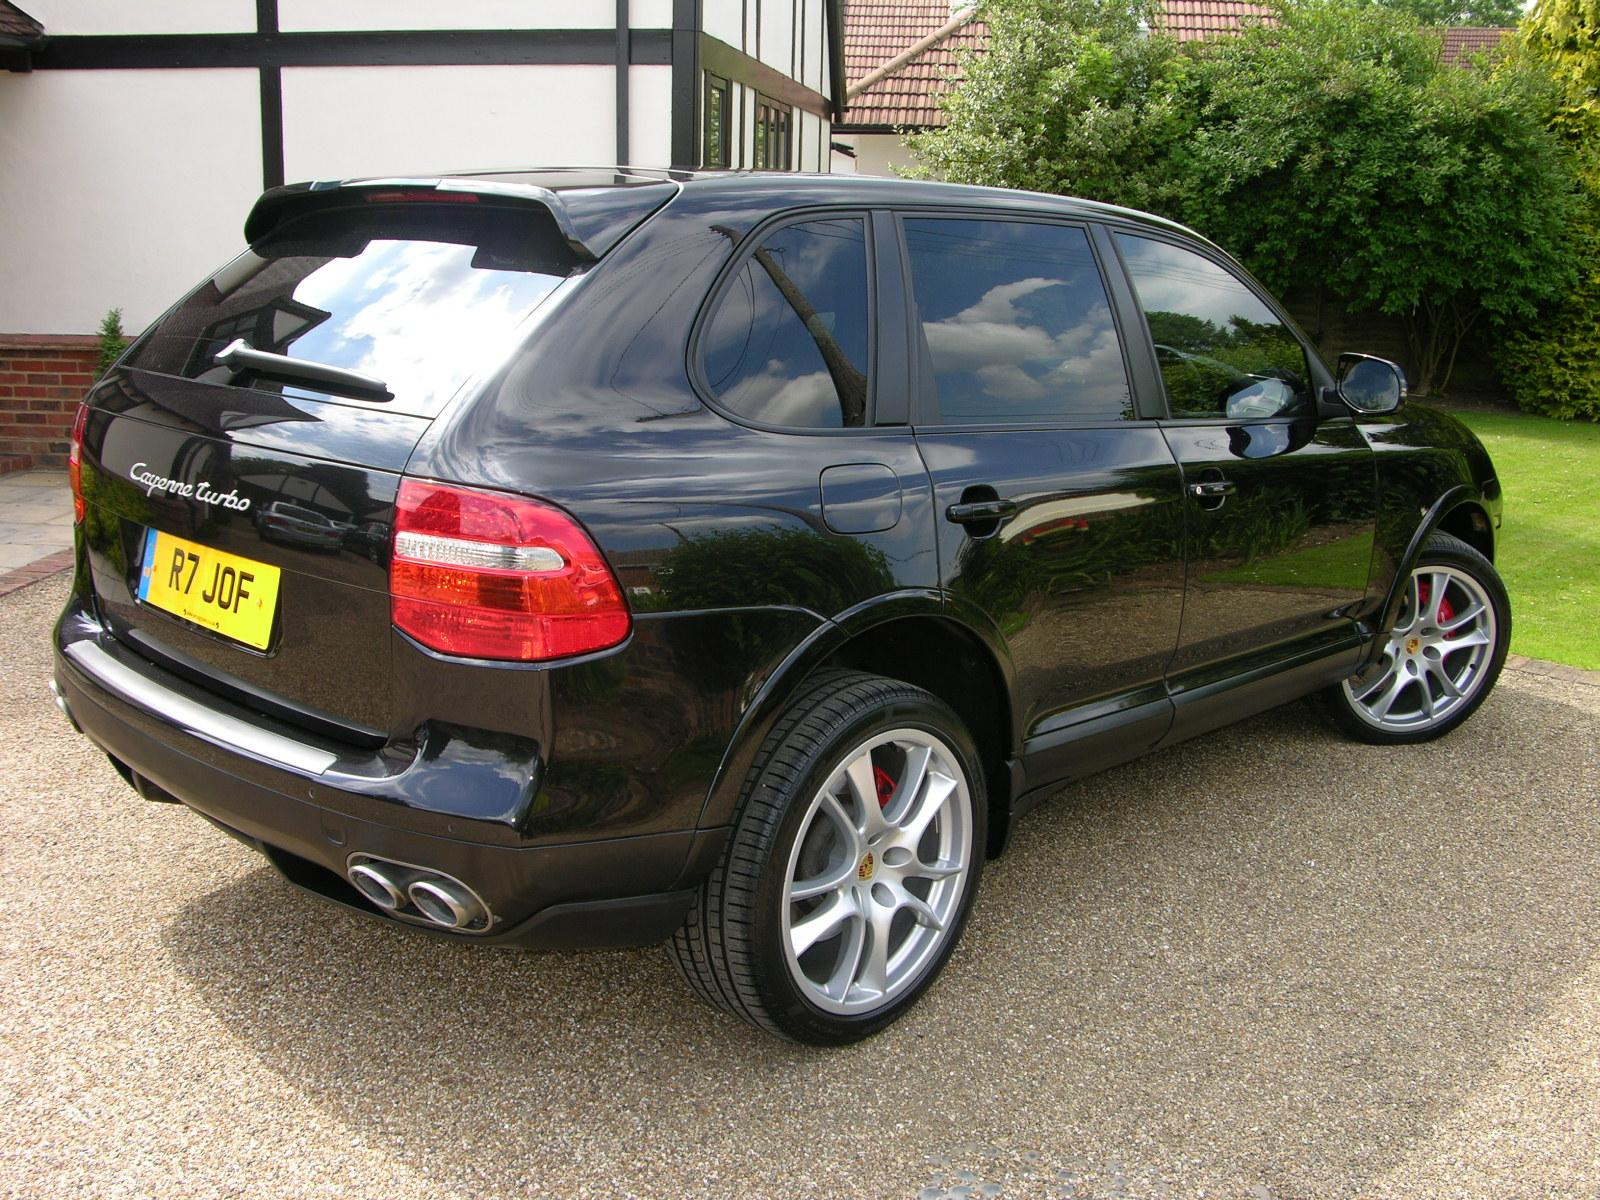 File:2007 Porsche Cayenne Turbo - Flickr - The Car Spy.jpg ...